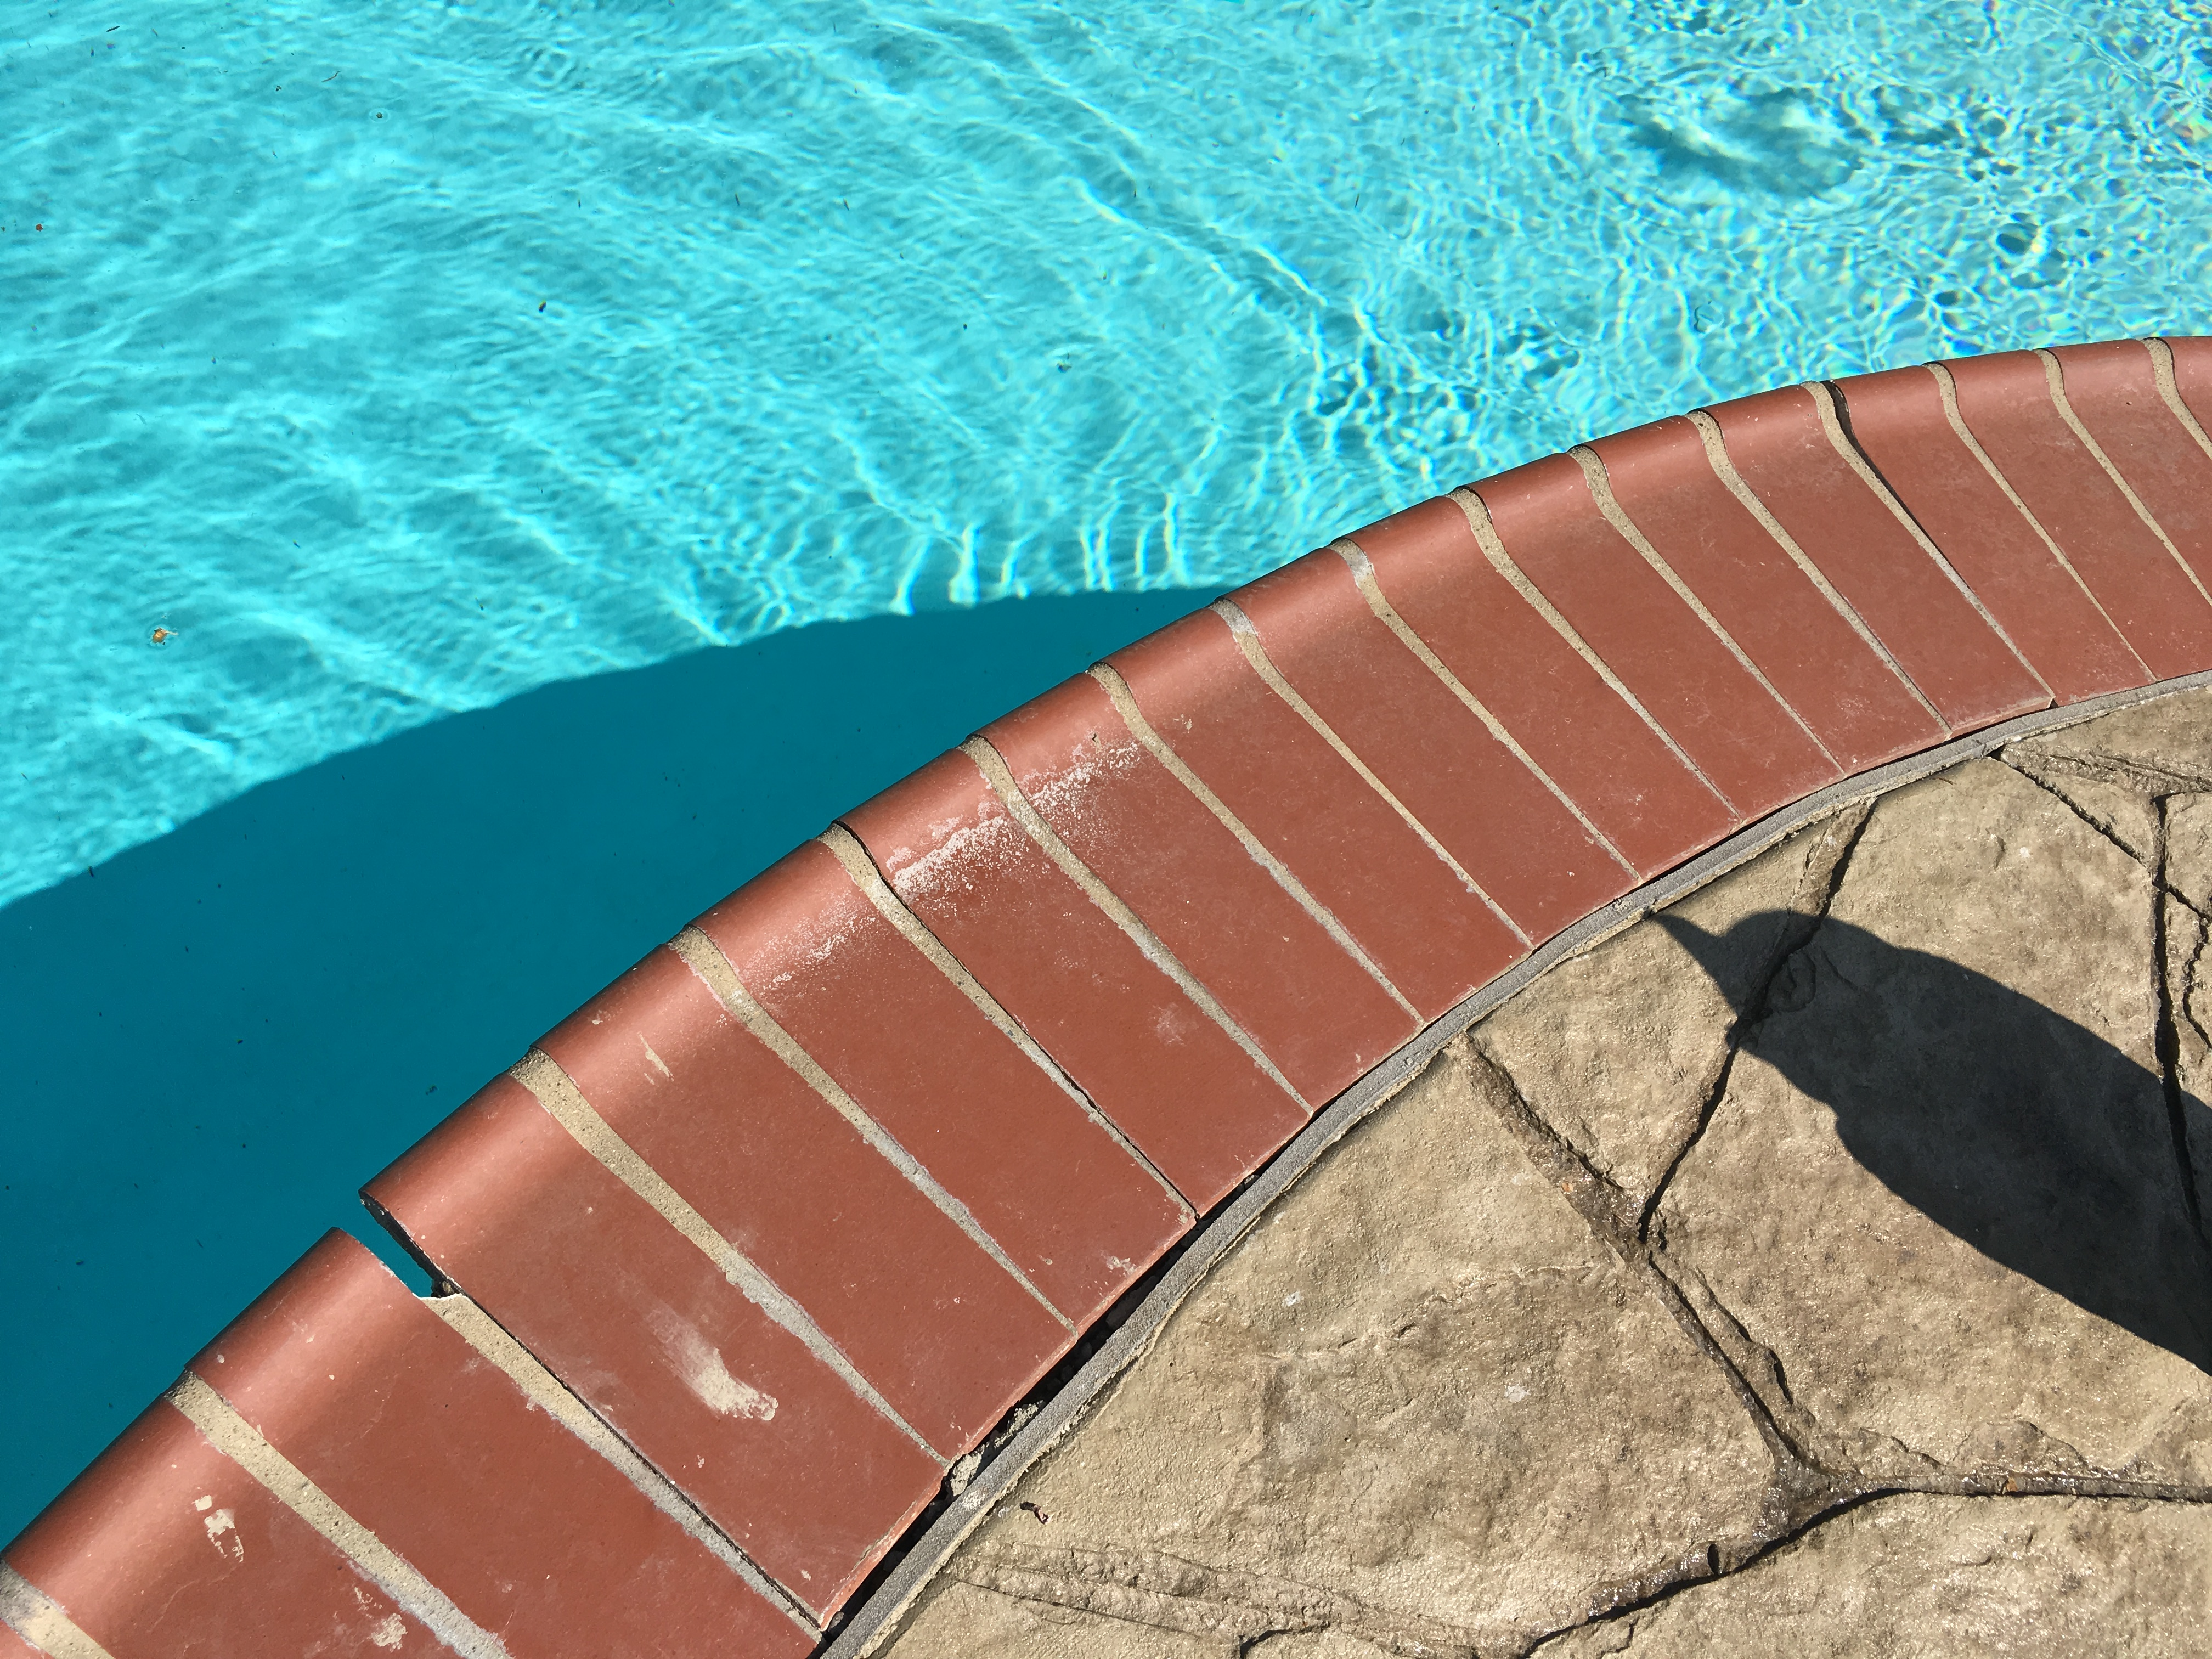 Swimming Pool Caulking Products : My hayward chlorinator lid with the black top is leaking